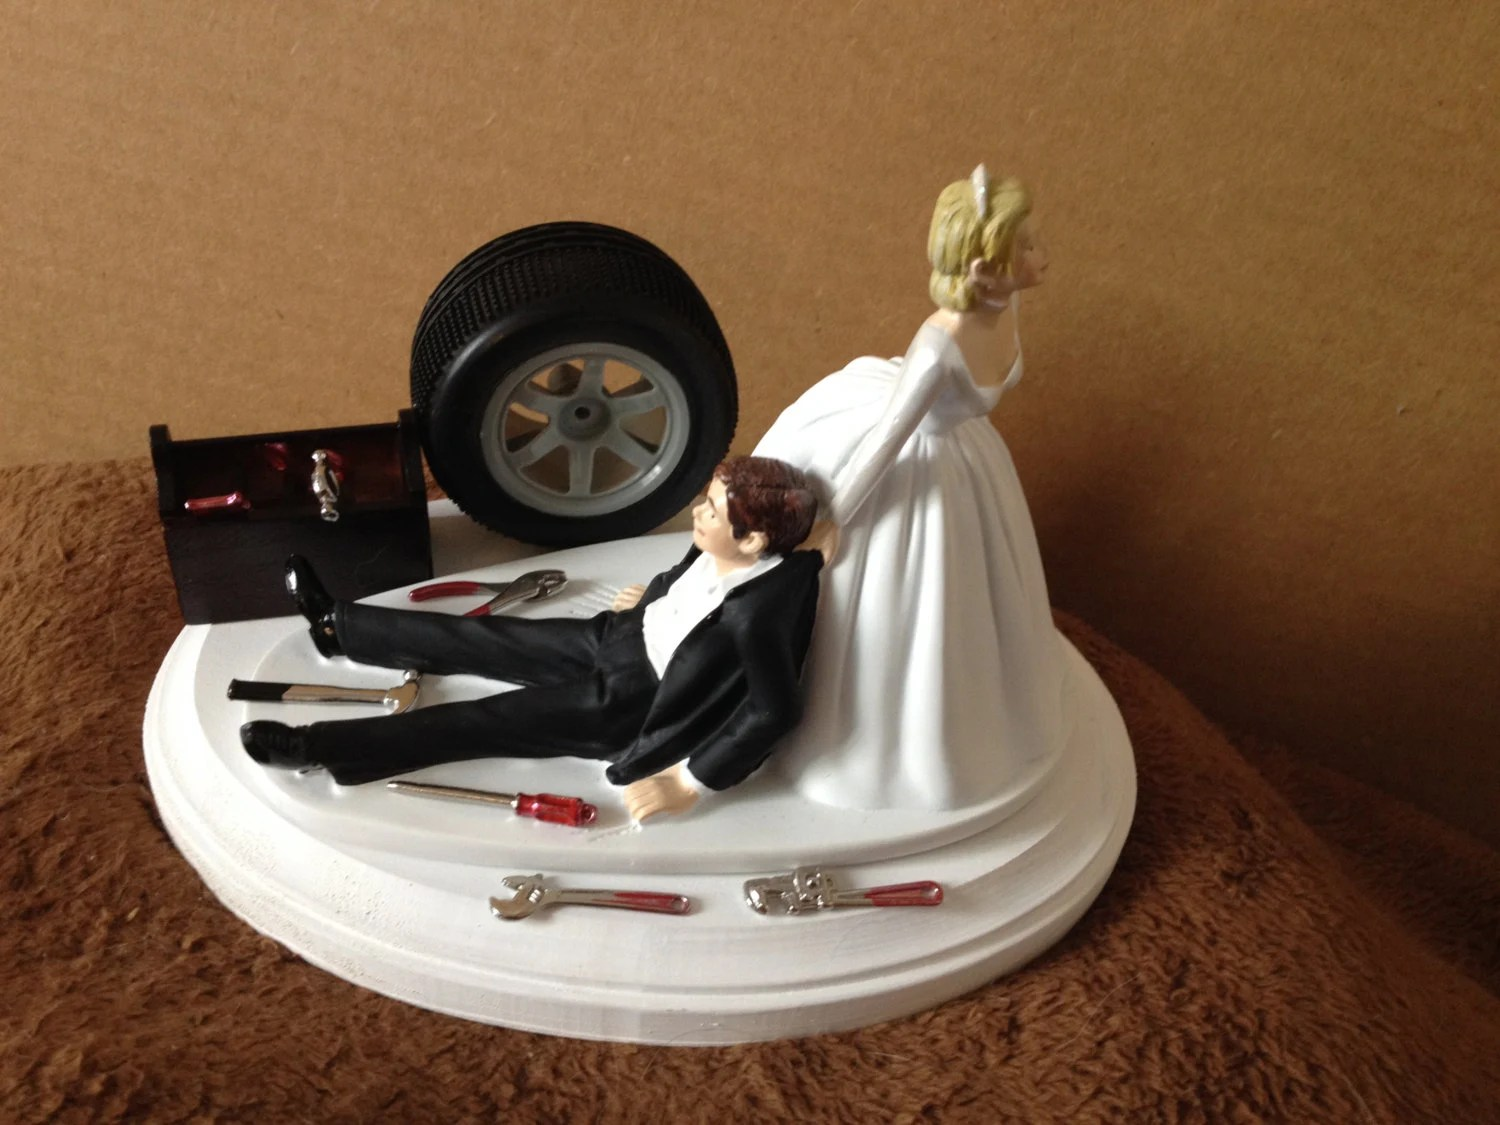 mechanics tool mechanic wedding ring Cake Topper Wedding Day Bride Groom Funny Auto Mechanic Grease Monkey Themed Automotive Garage Shop Tools Hair color changed for free